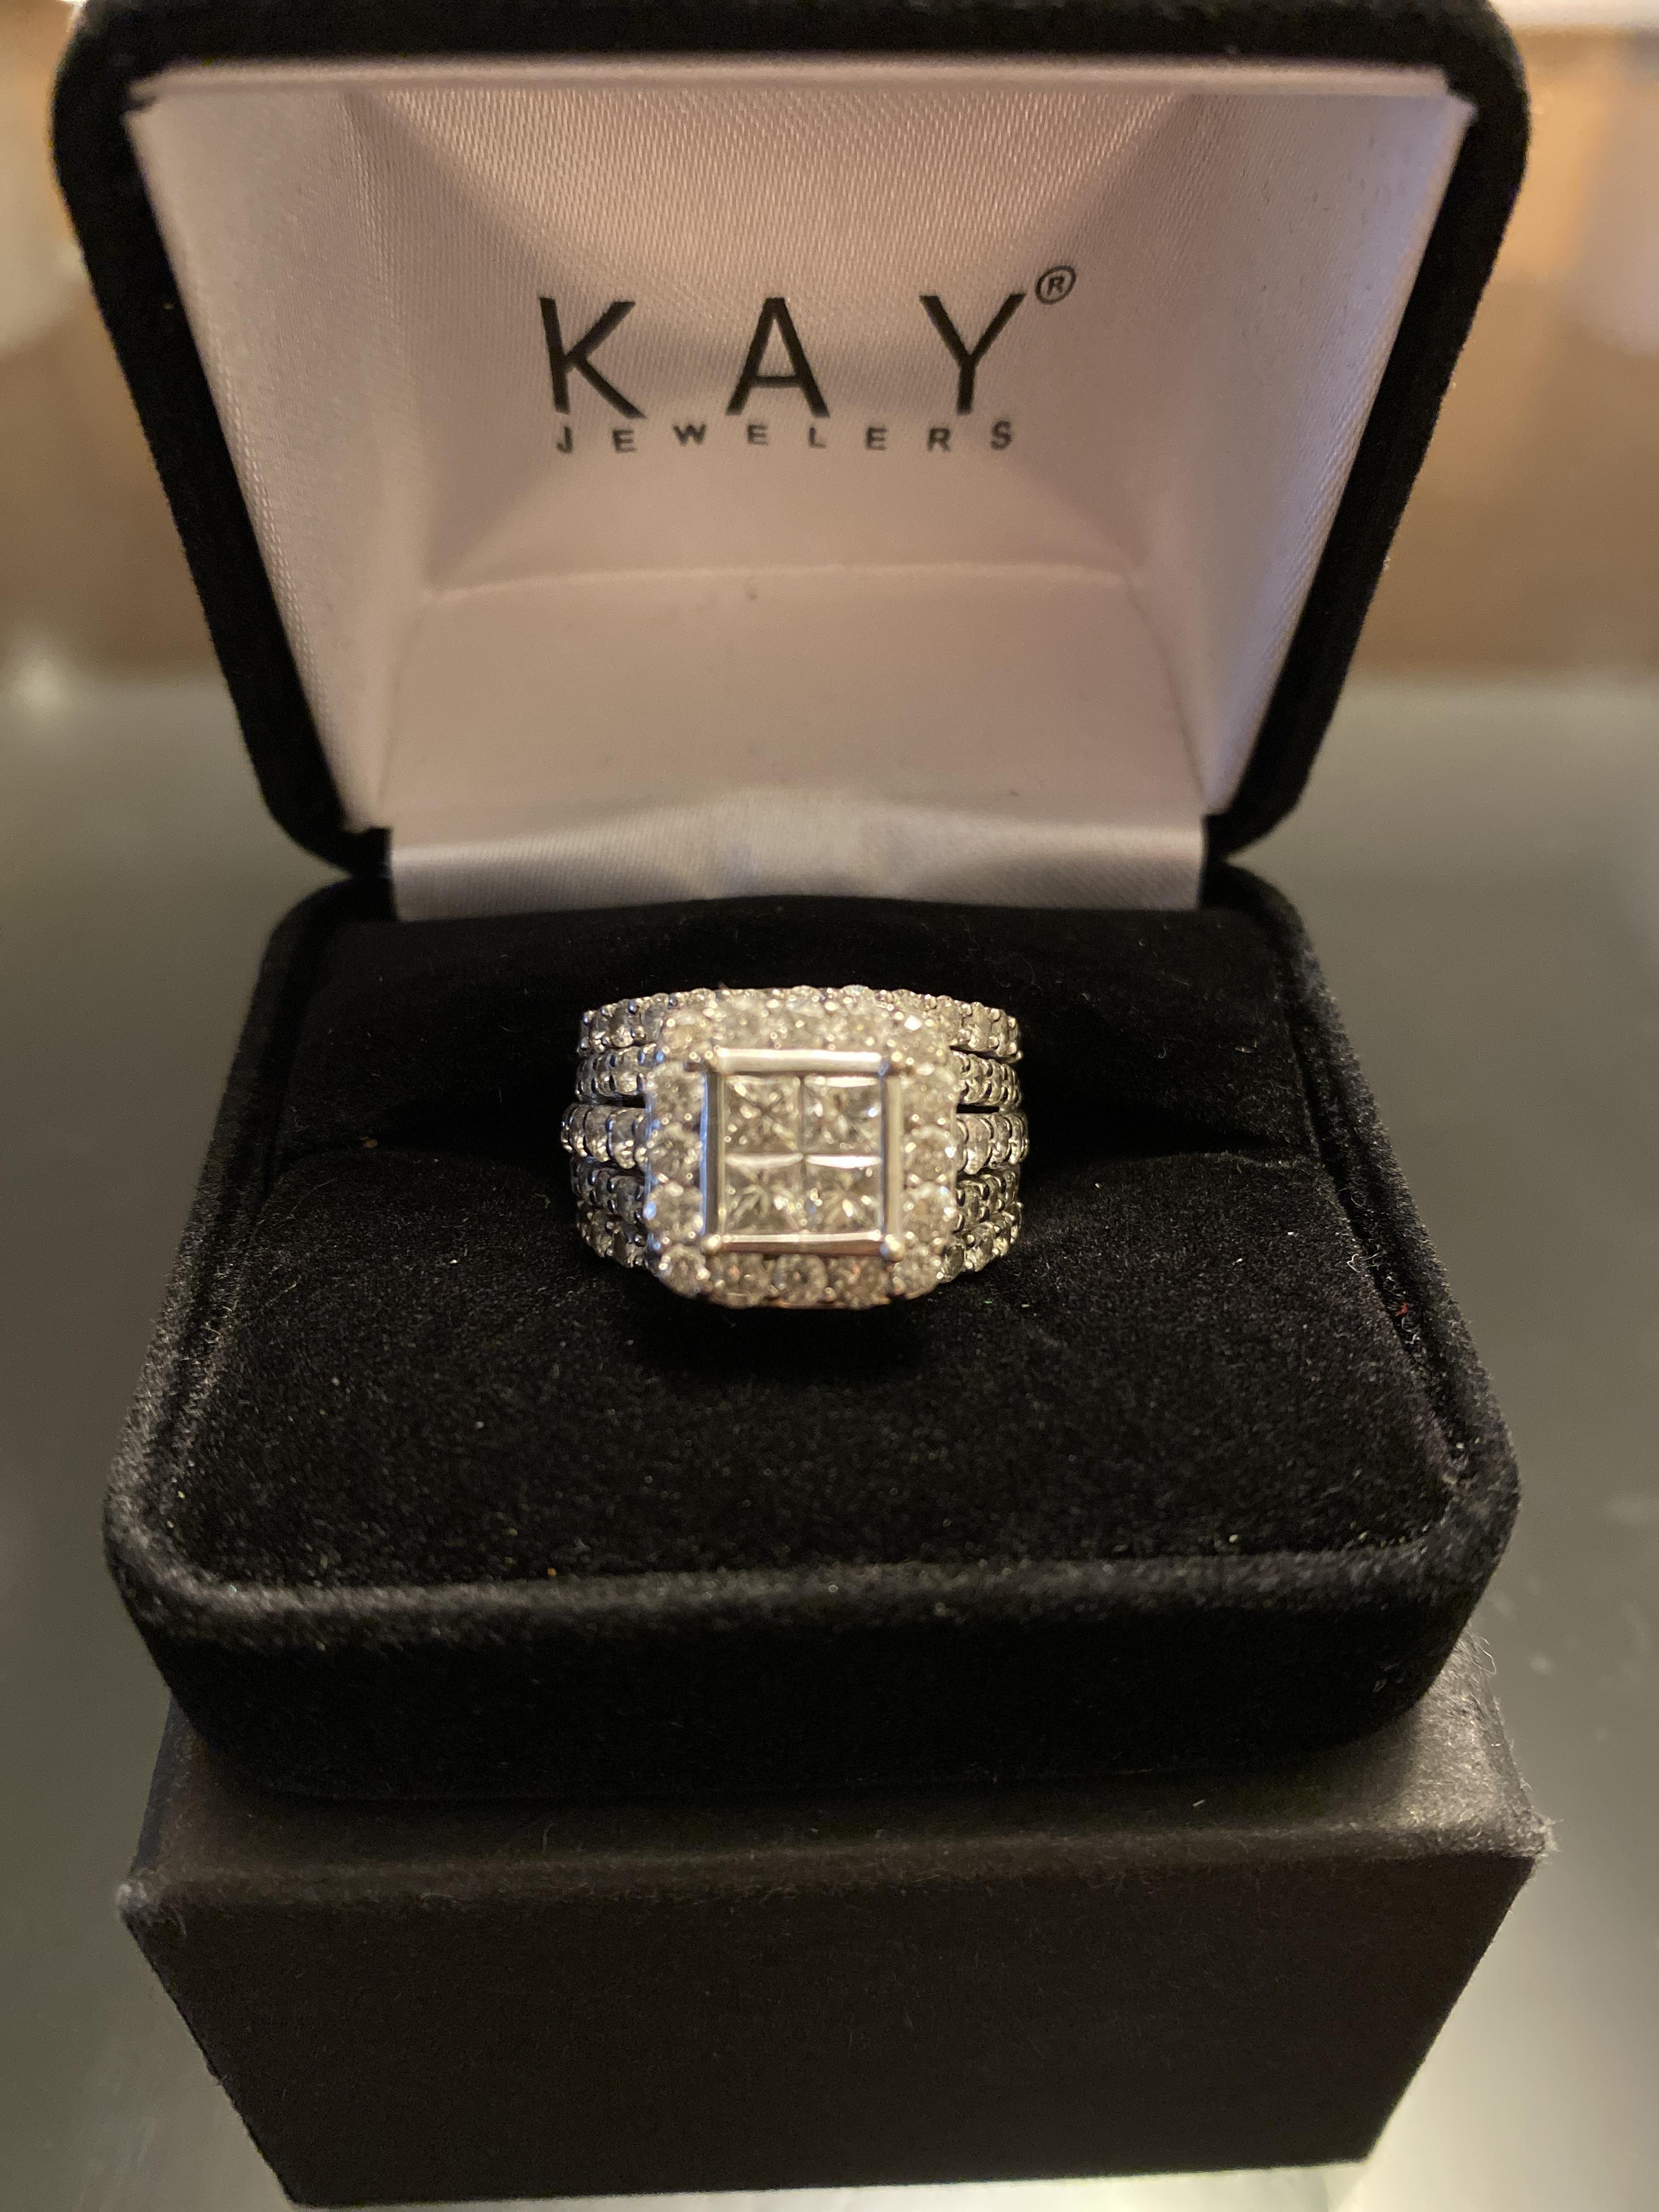 Kay Jewelers Engagement Ring And Bands I Do Now I Don T